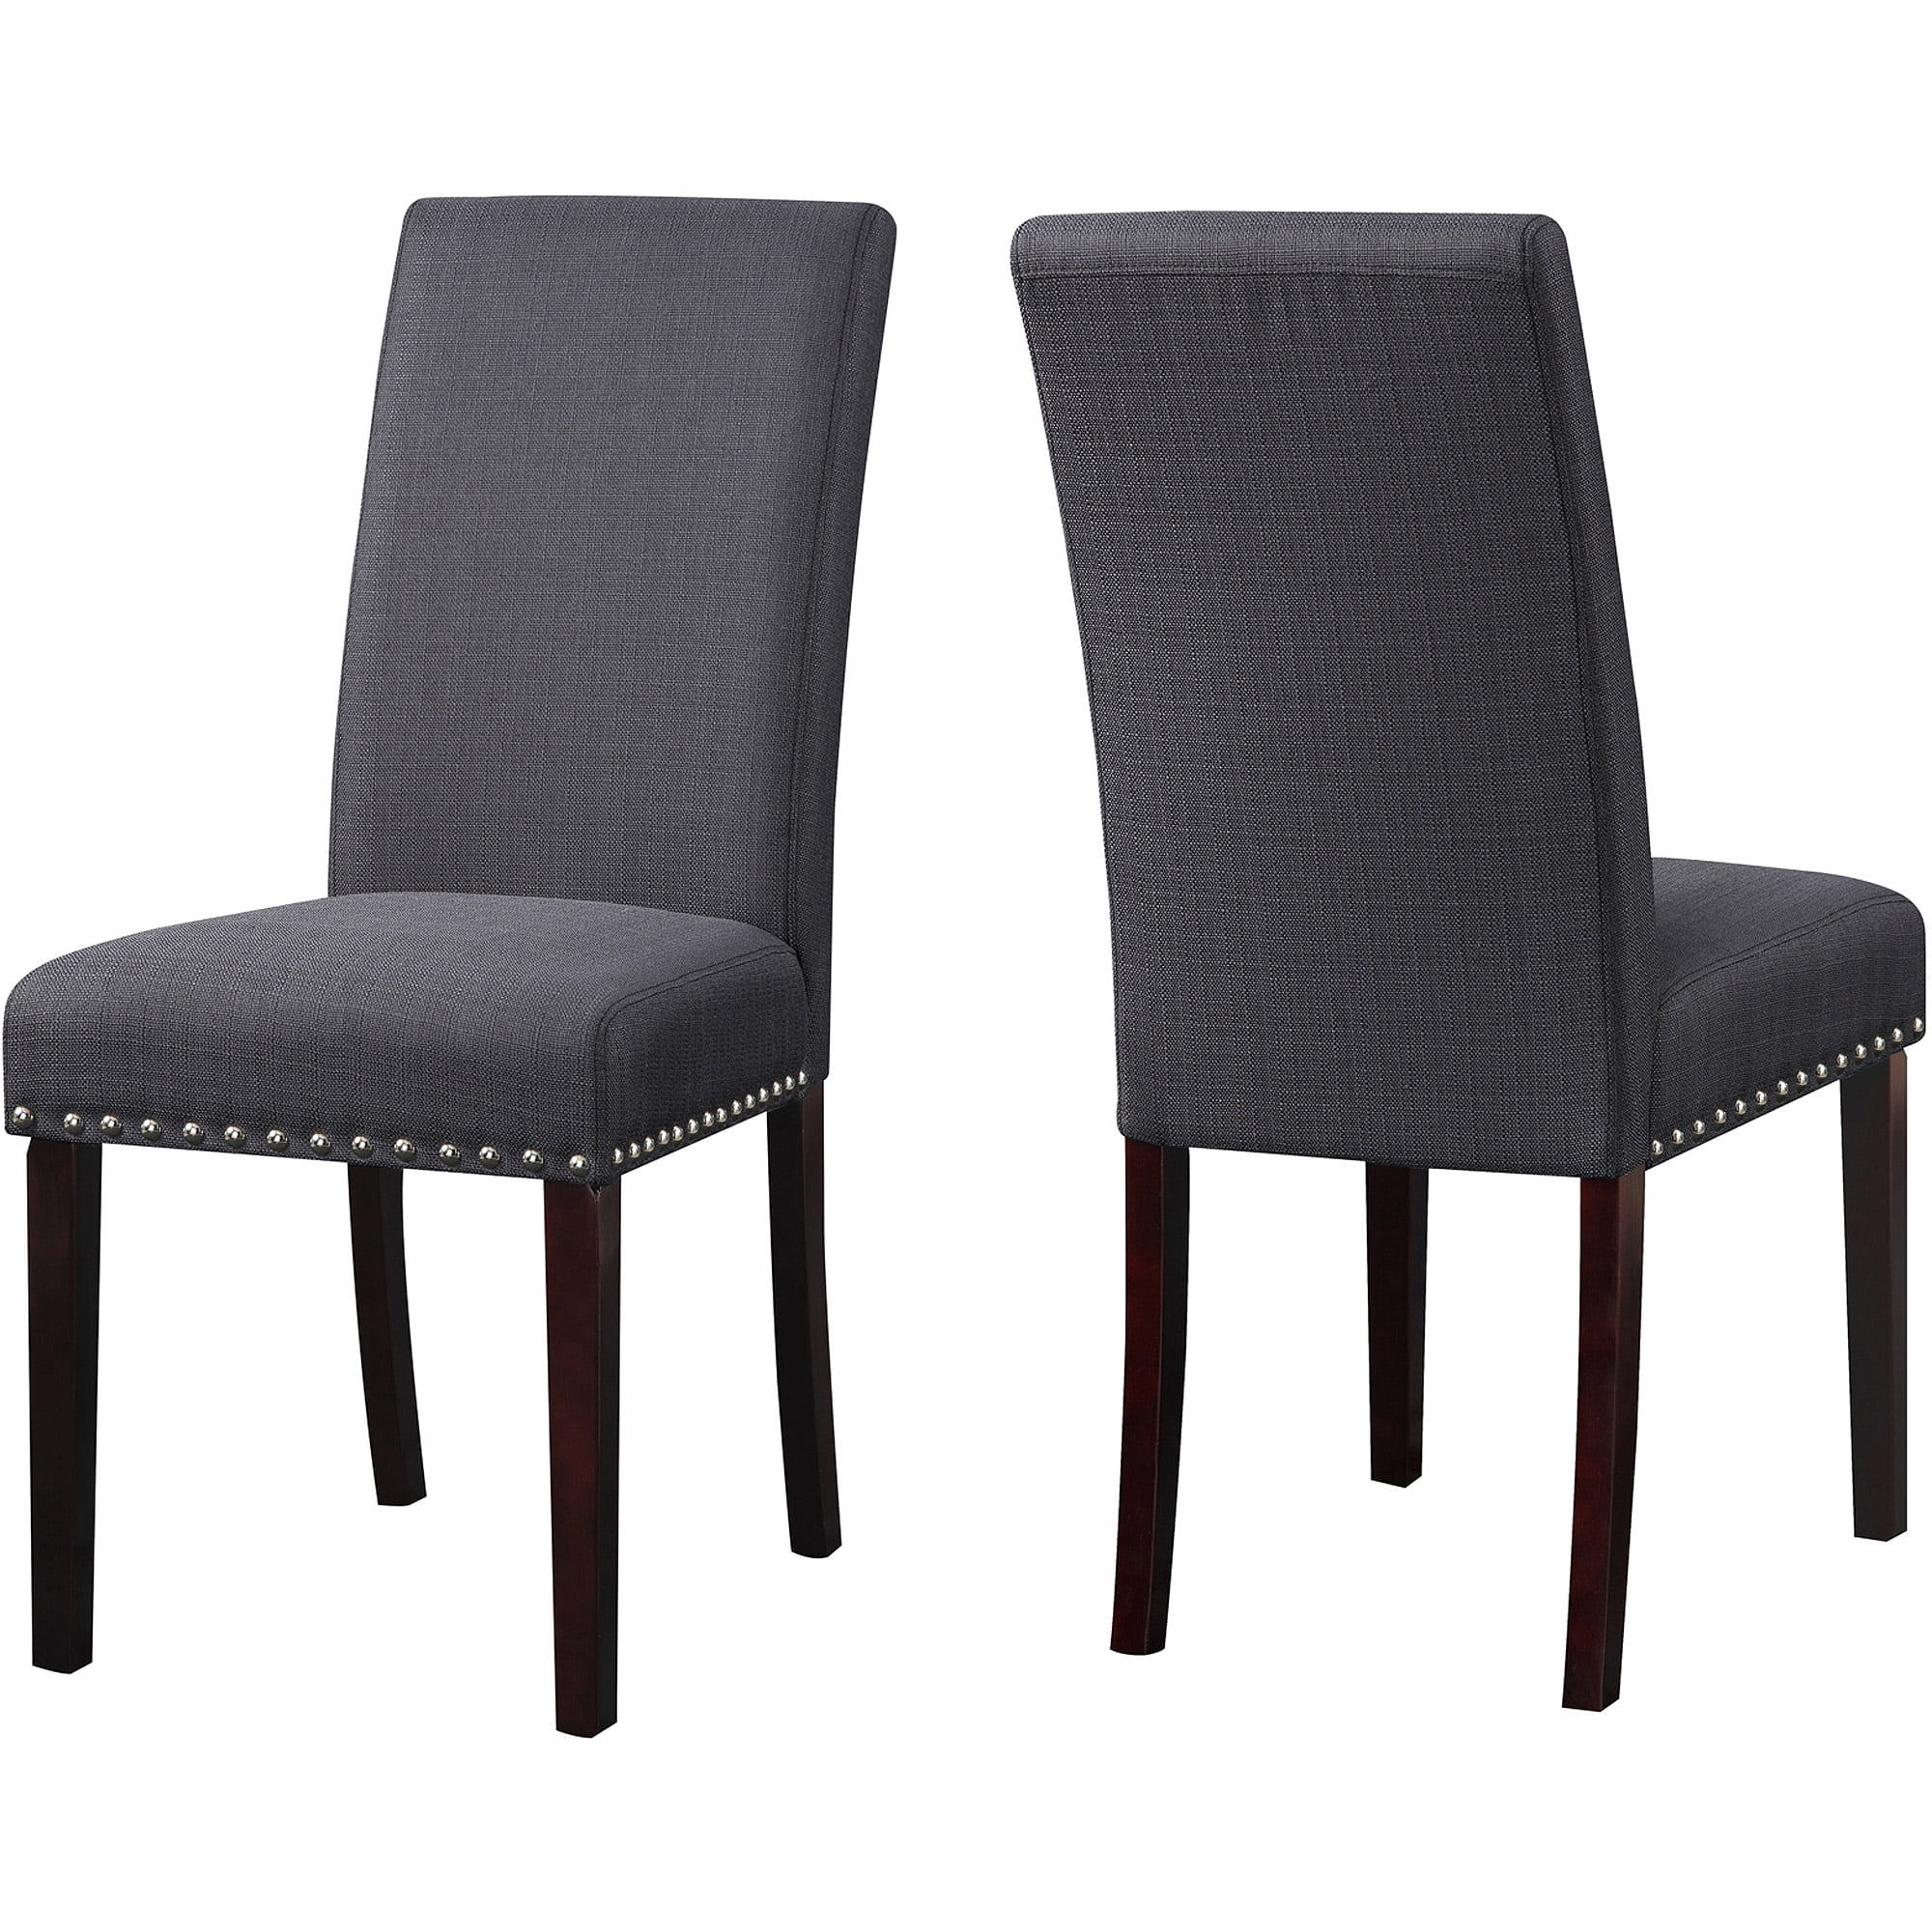 DHI Nice Nail Head Upholstered Dining Chair, 2 Pack, Multiple Colors    Walmart.com